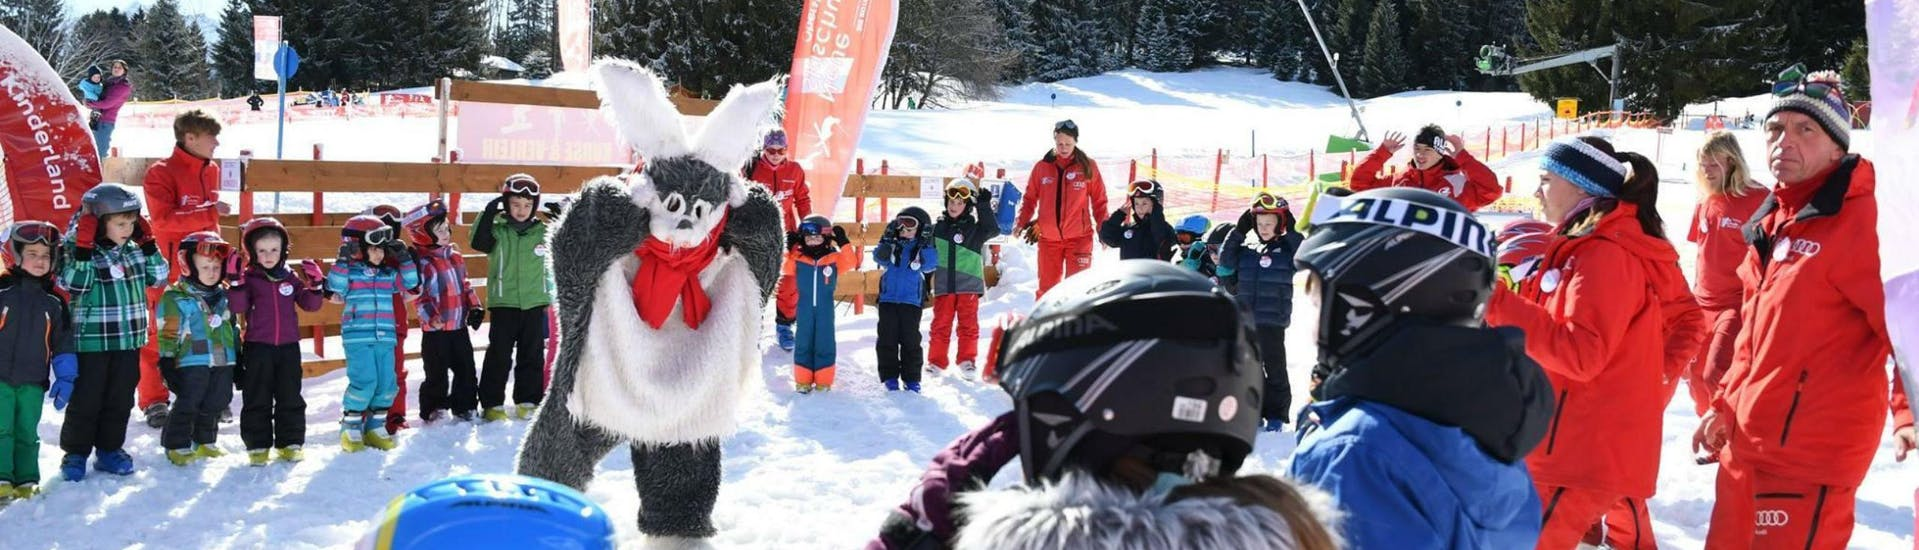 """Bunny Hasi from the ski school Neue Skischule Oberstdorf teaches children how to ski during the Kids Ski Lessons """"Kids Club"""" (4-6 years)."""